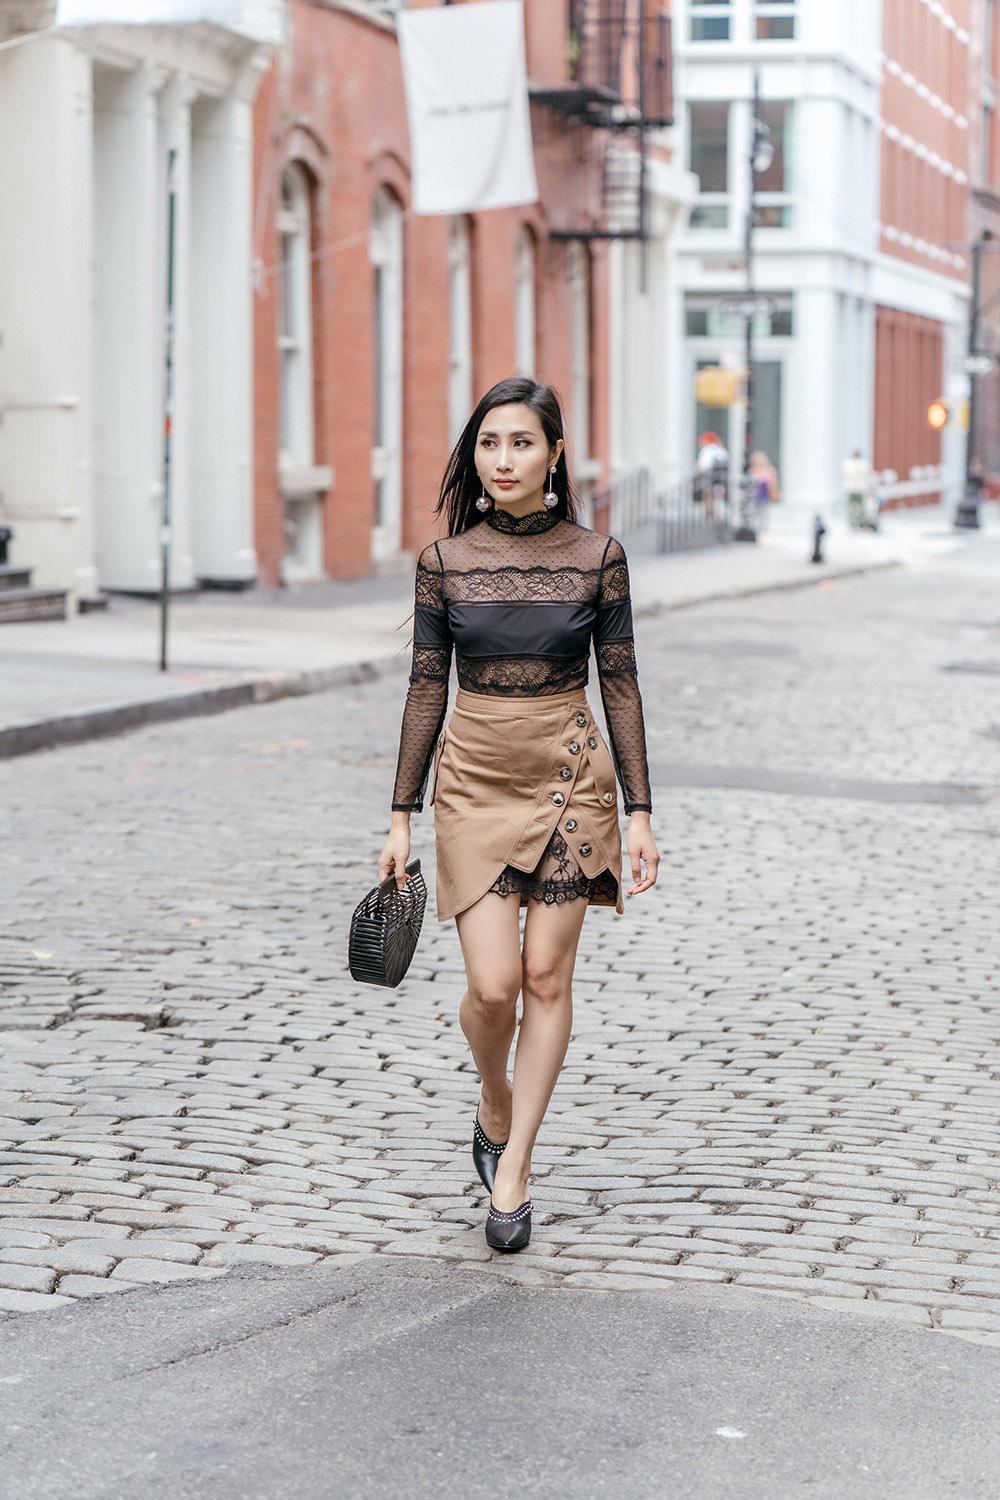 How To Wear Mules This Fall | Of Leather and Lace - A Fashion & Travel Blog by Tina Lee | Self Portrait Utility Skirt, Thistle & Spire Lace Bodysuit, Cult Gaia Bag, 3.1 Phillip Lim Studded Mules